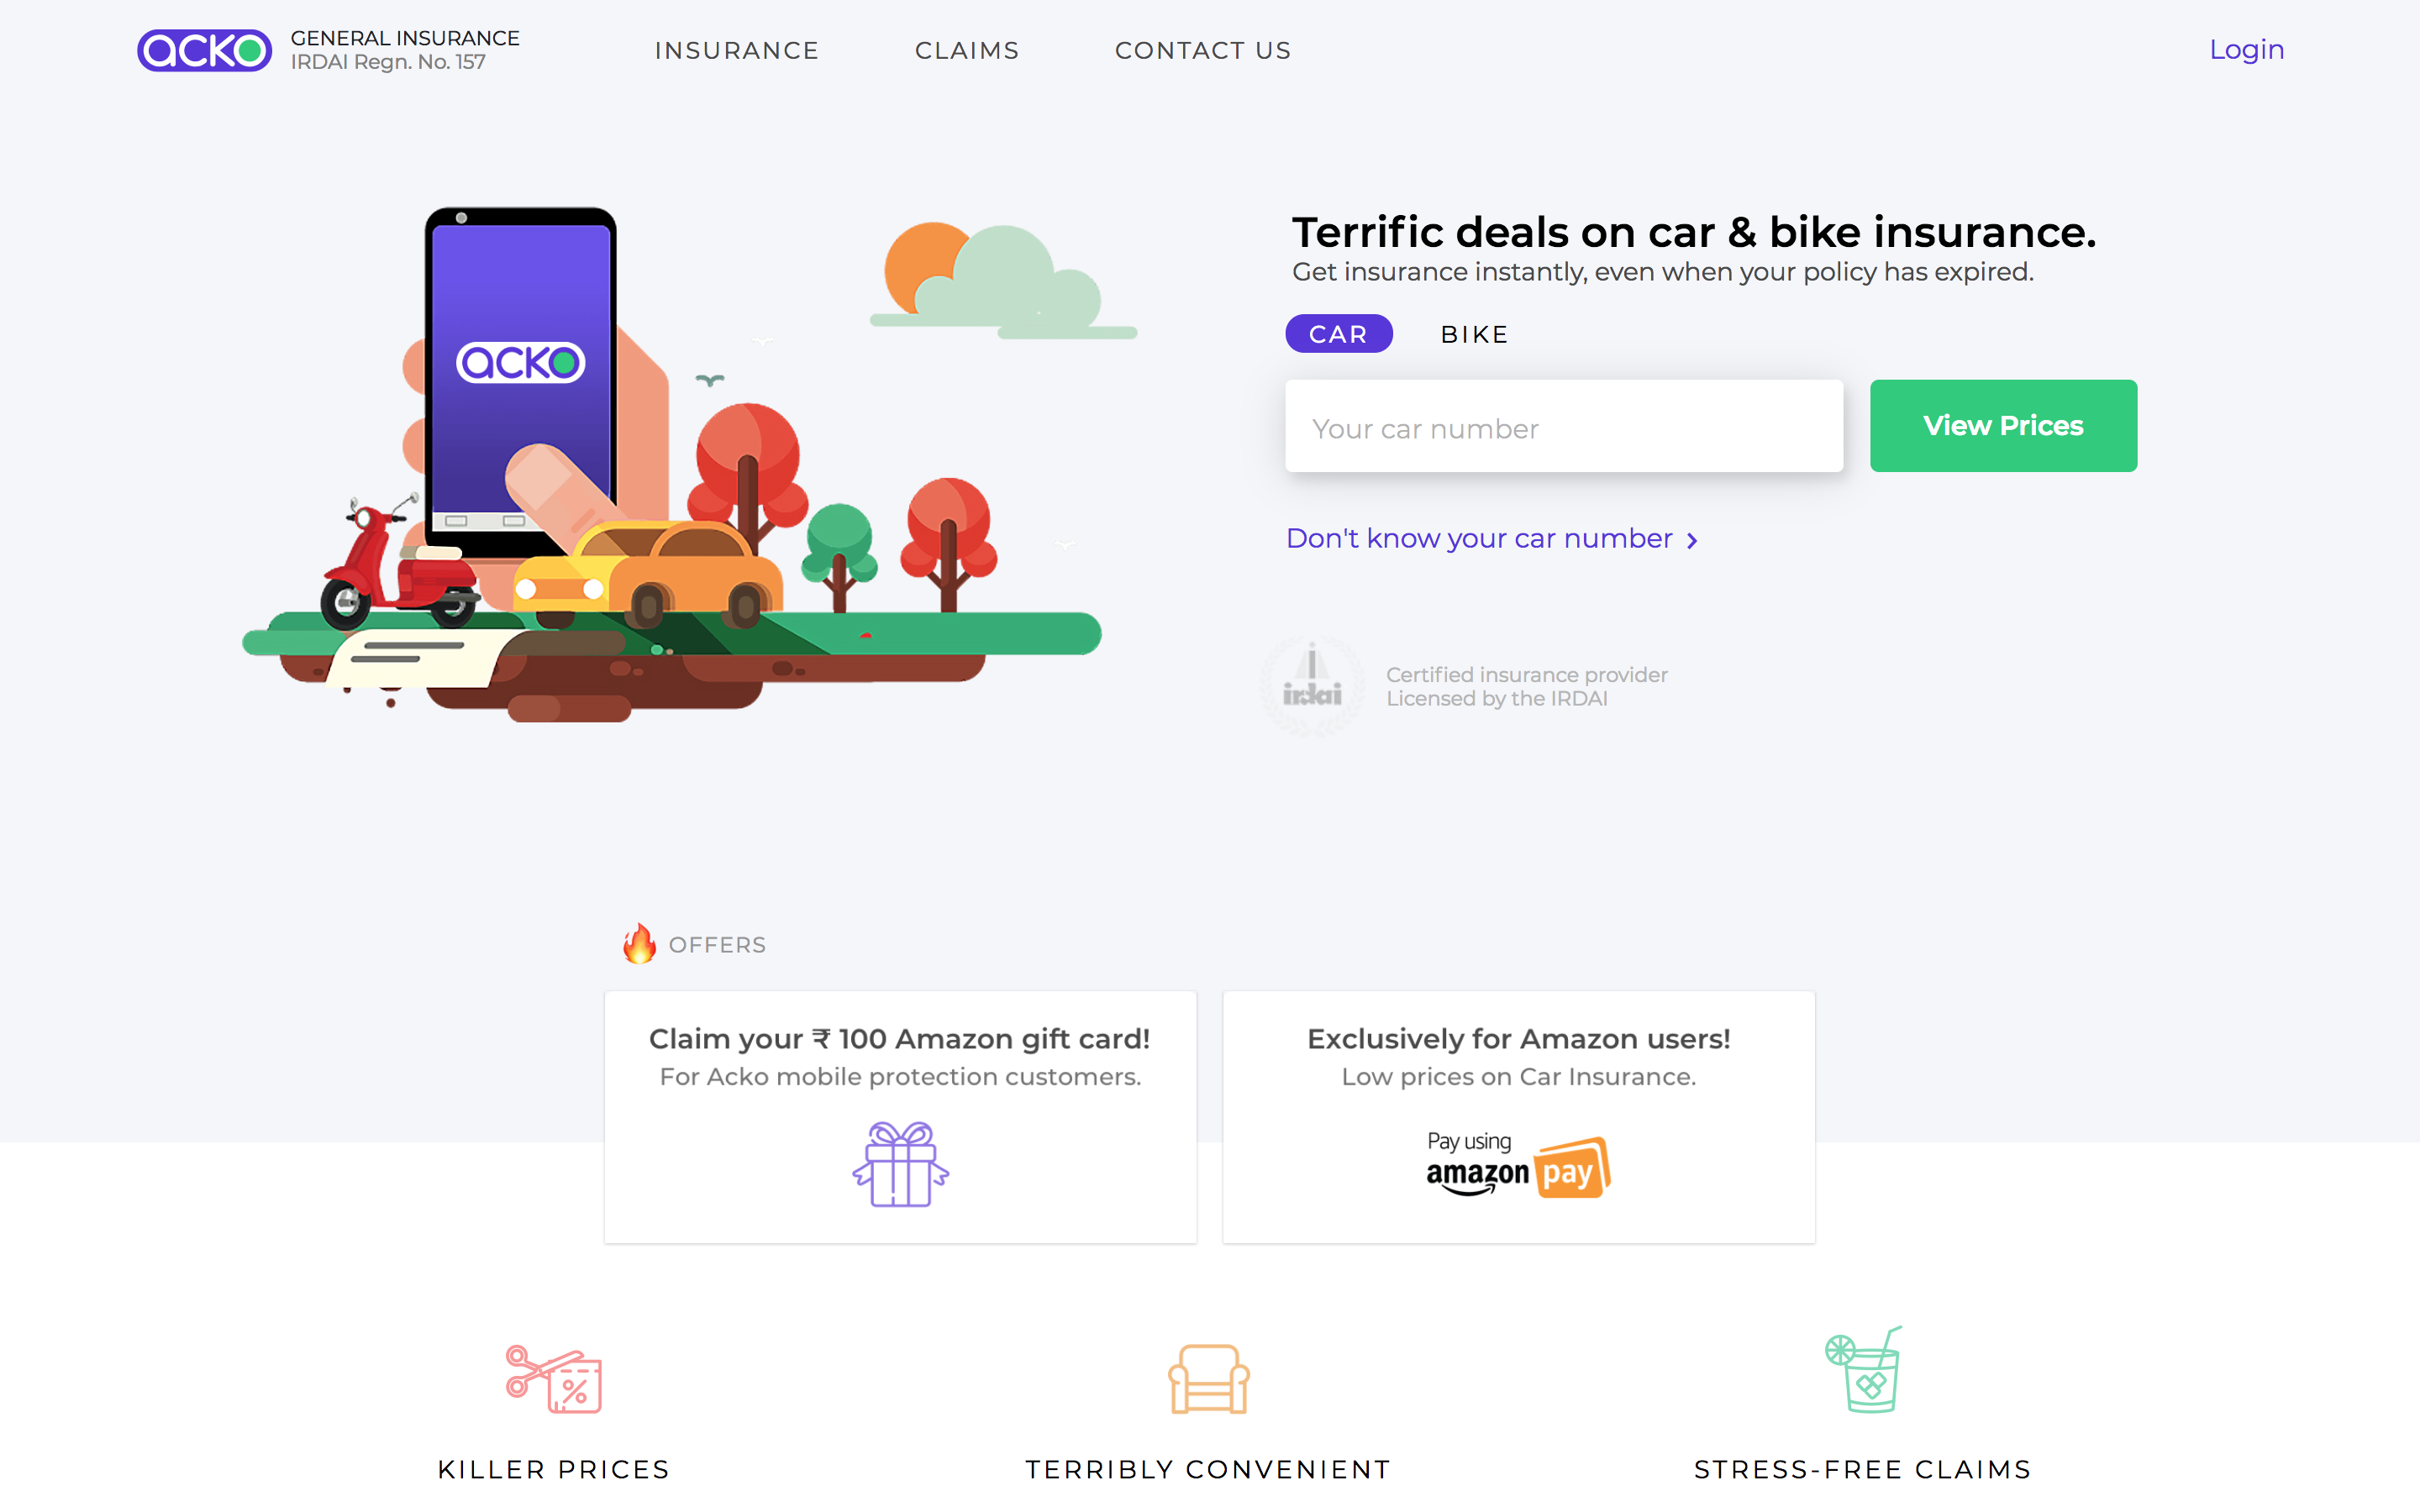 Amazon leads $12M investment in India-based digital insurance startup Acko screenshot 2018 05 27 14 31 38